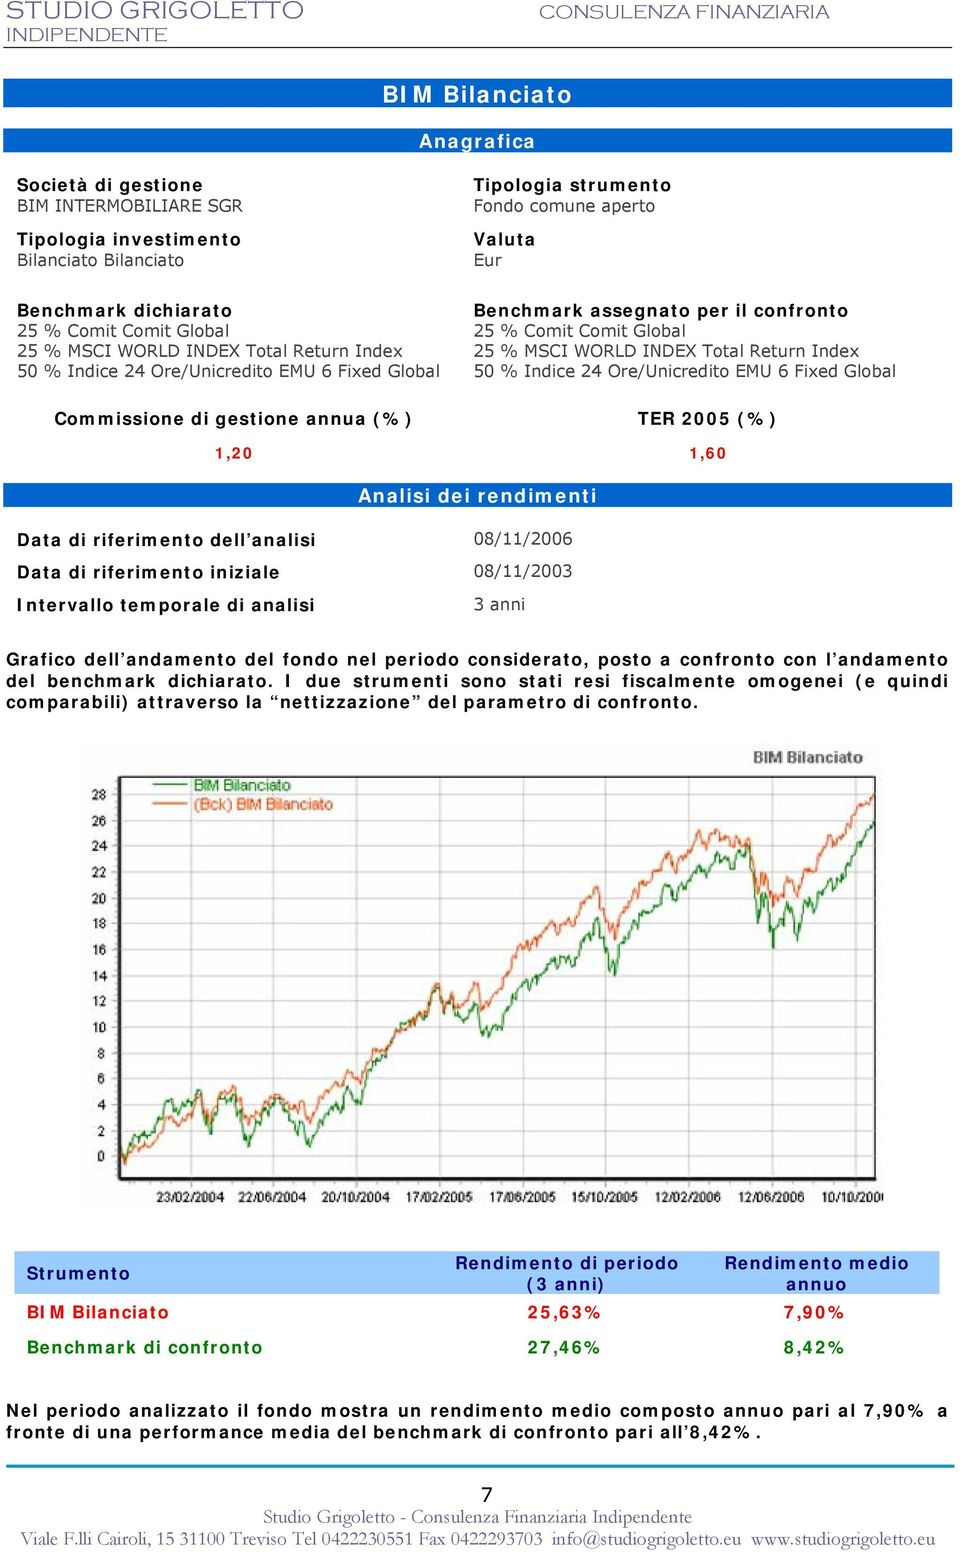 % MSCI WORLD INDEX Total Return Index 50 % Indice 24 Ore/Unicredito EMU 6 Fixed Global Commissione di gestione annua (%) TER 2005 (%) 1,20 1,60 Analisi dei rendimenti Data di riferimento dell analisi